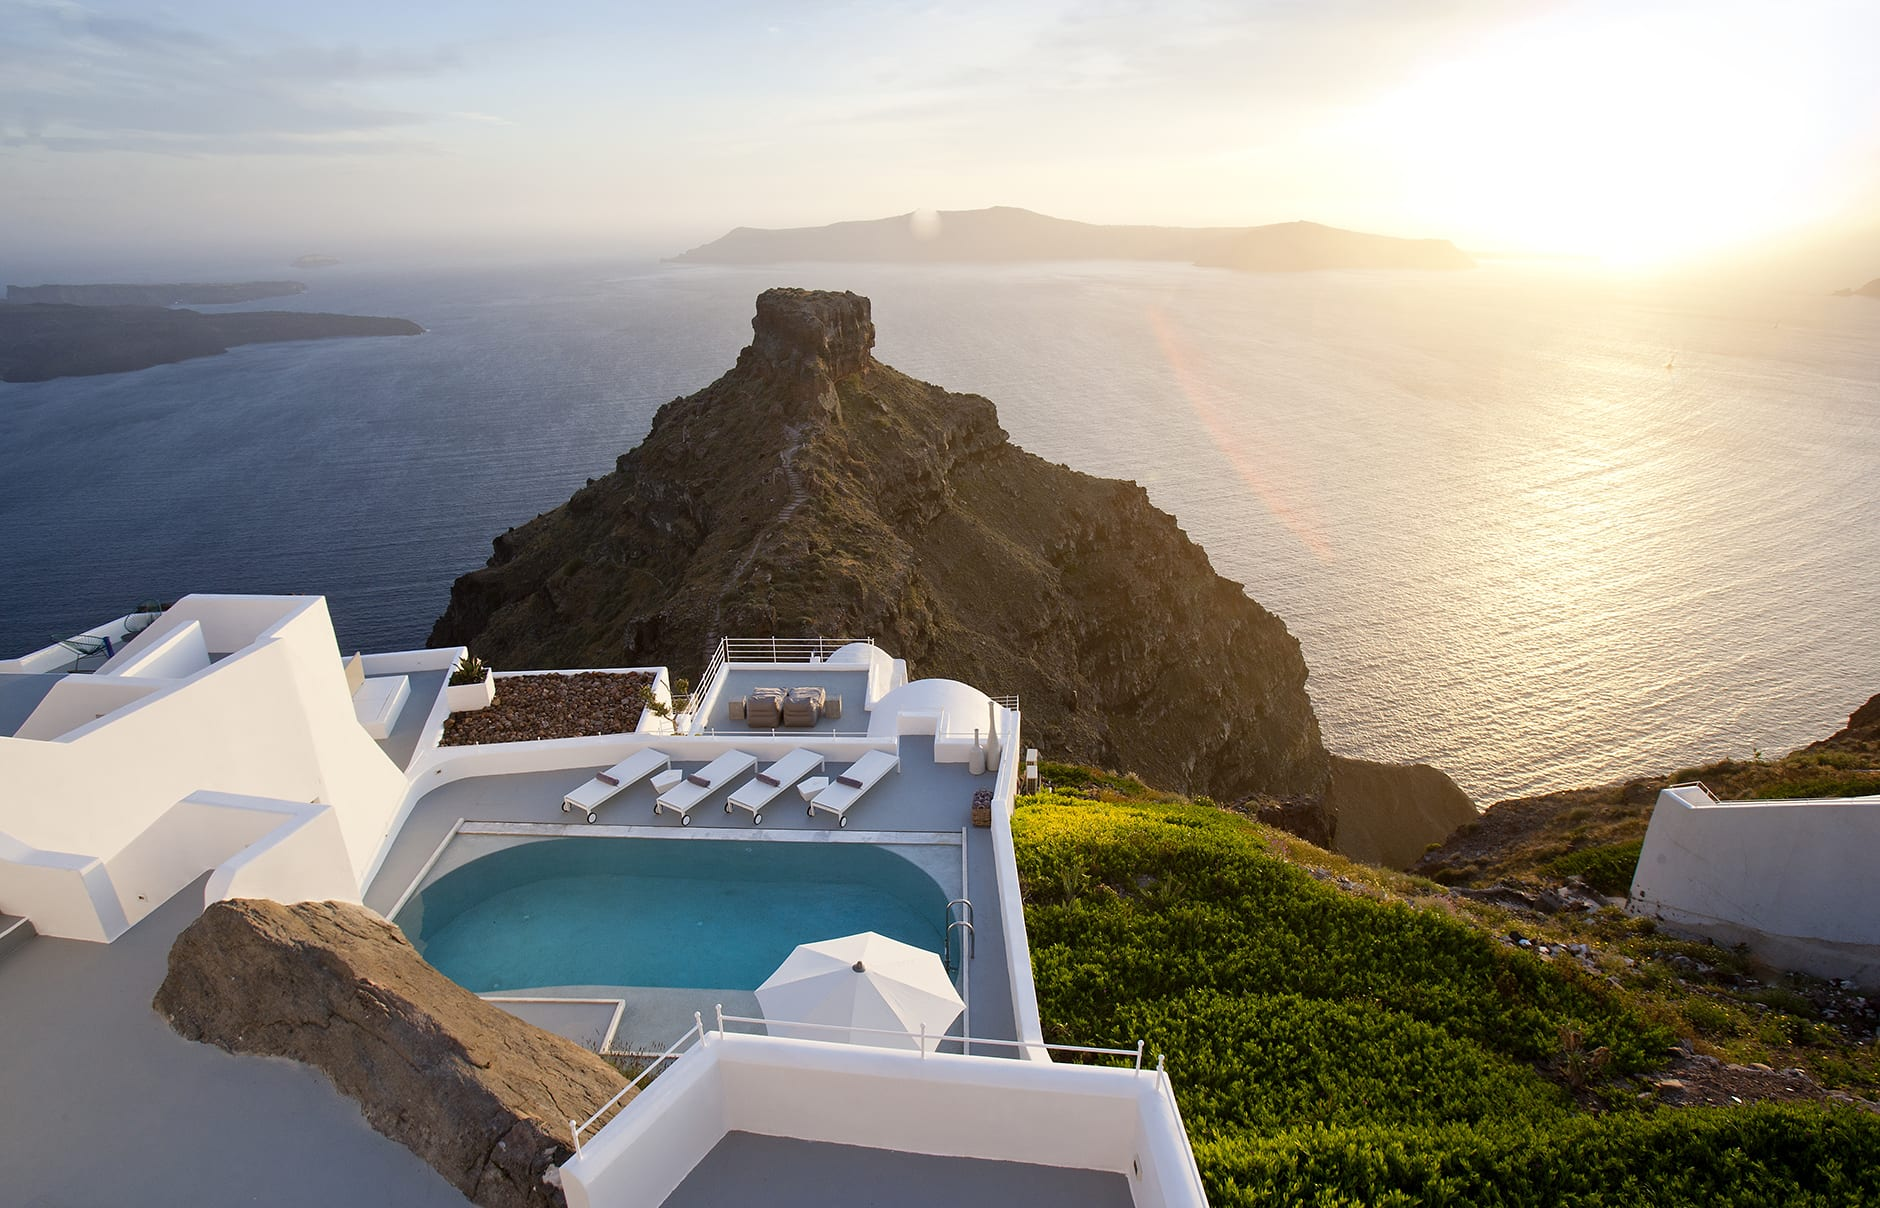 Villa Private Pool & General View. Grace Hotel Santorini, Greece. Luxury Hotel Review by TravelPlusStyle. Photo © Auberge Resorts Collection